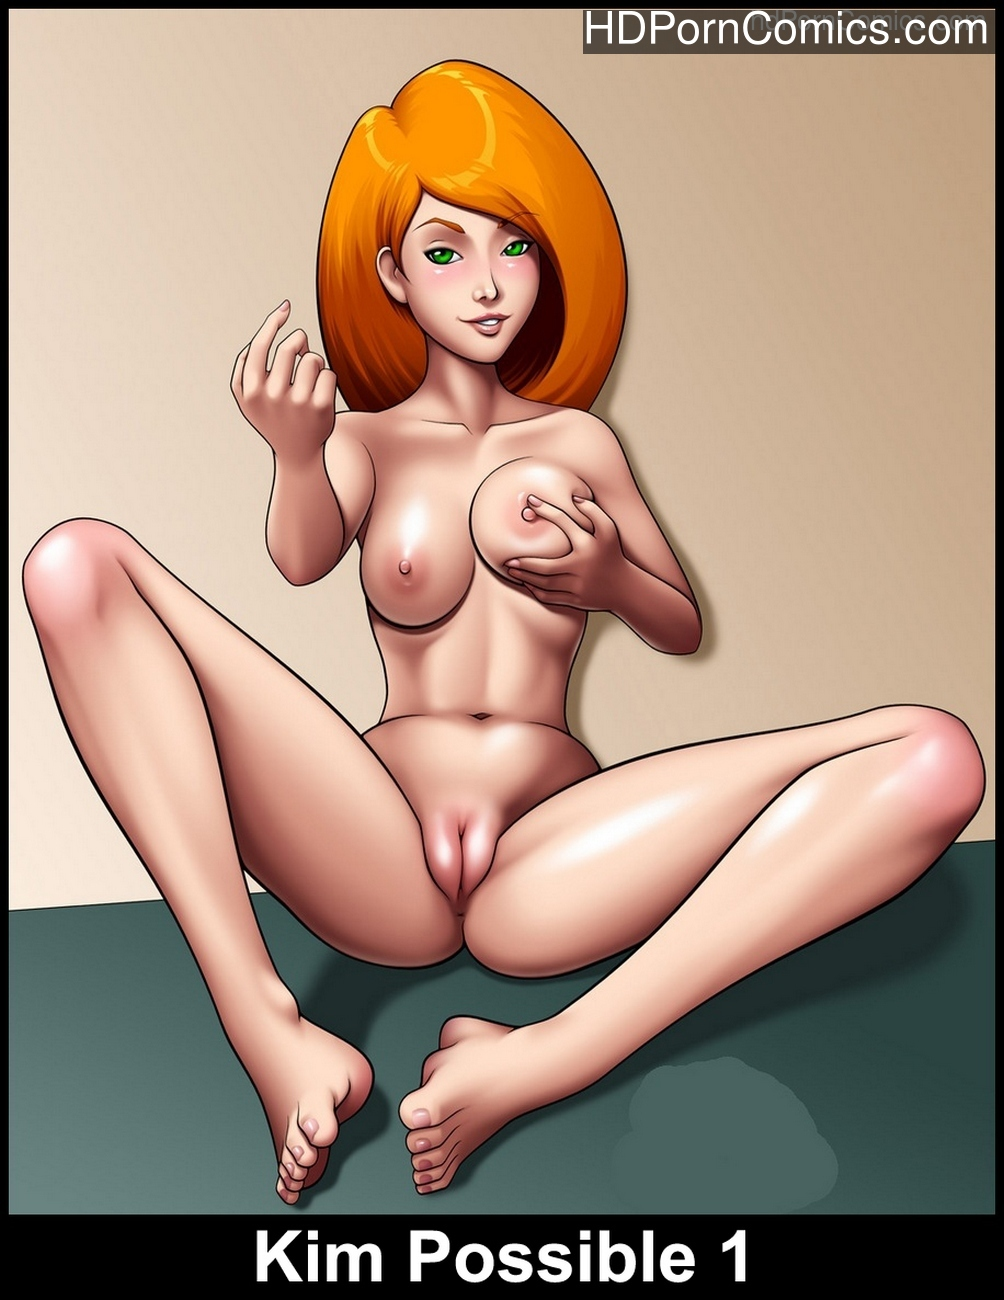 Kim Possible 1 Sex Comic